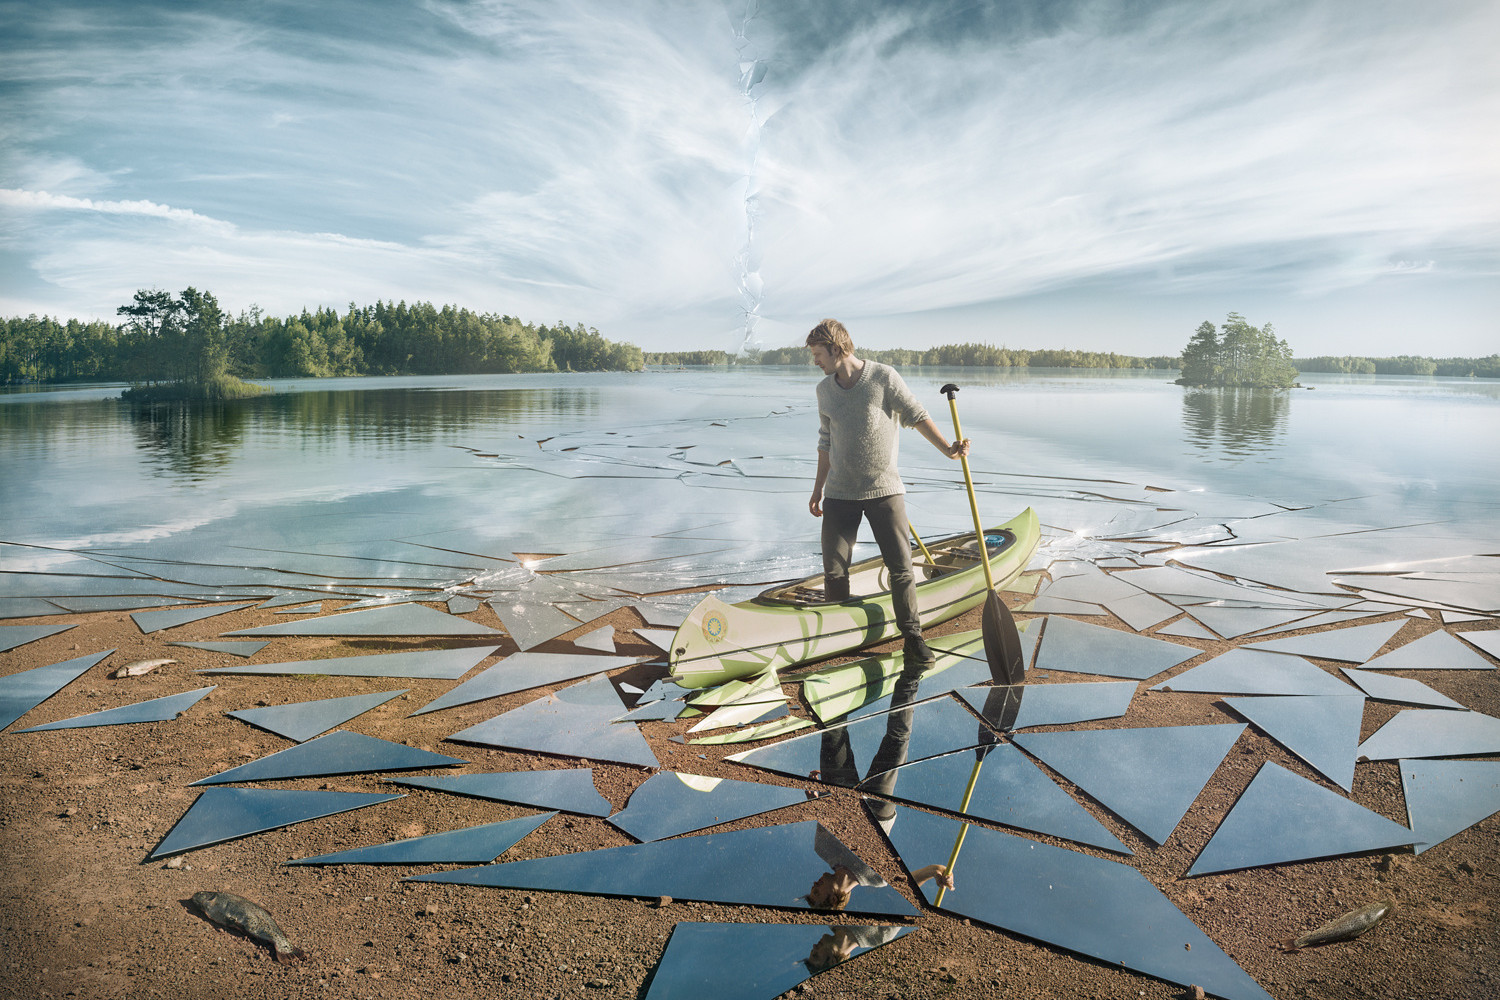 Photographer Shatters Reality With This Mind-Bending Image